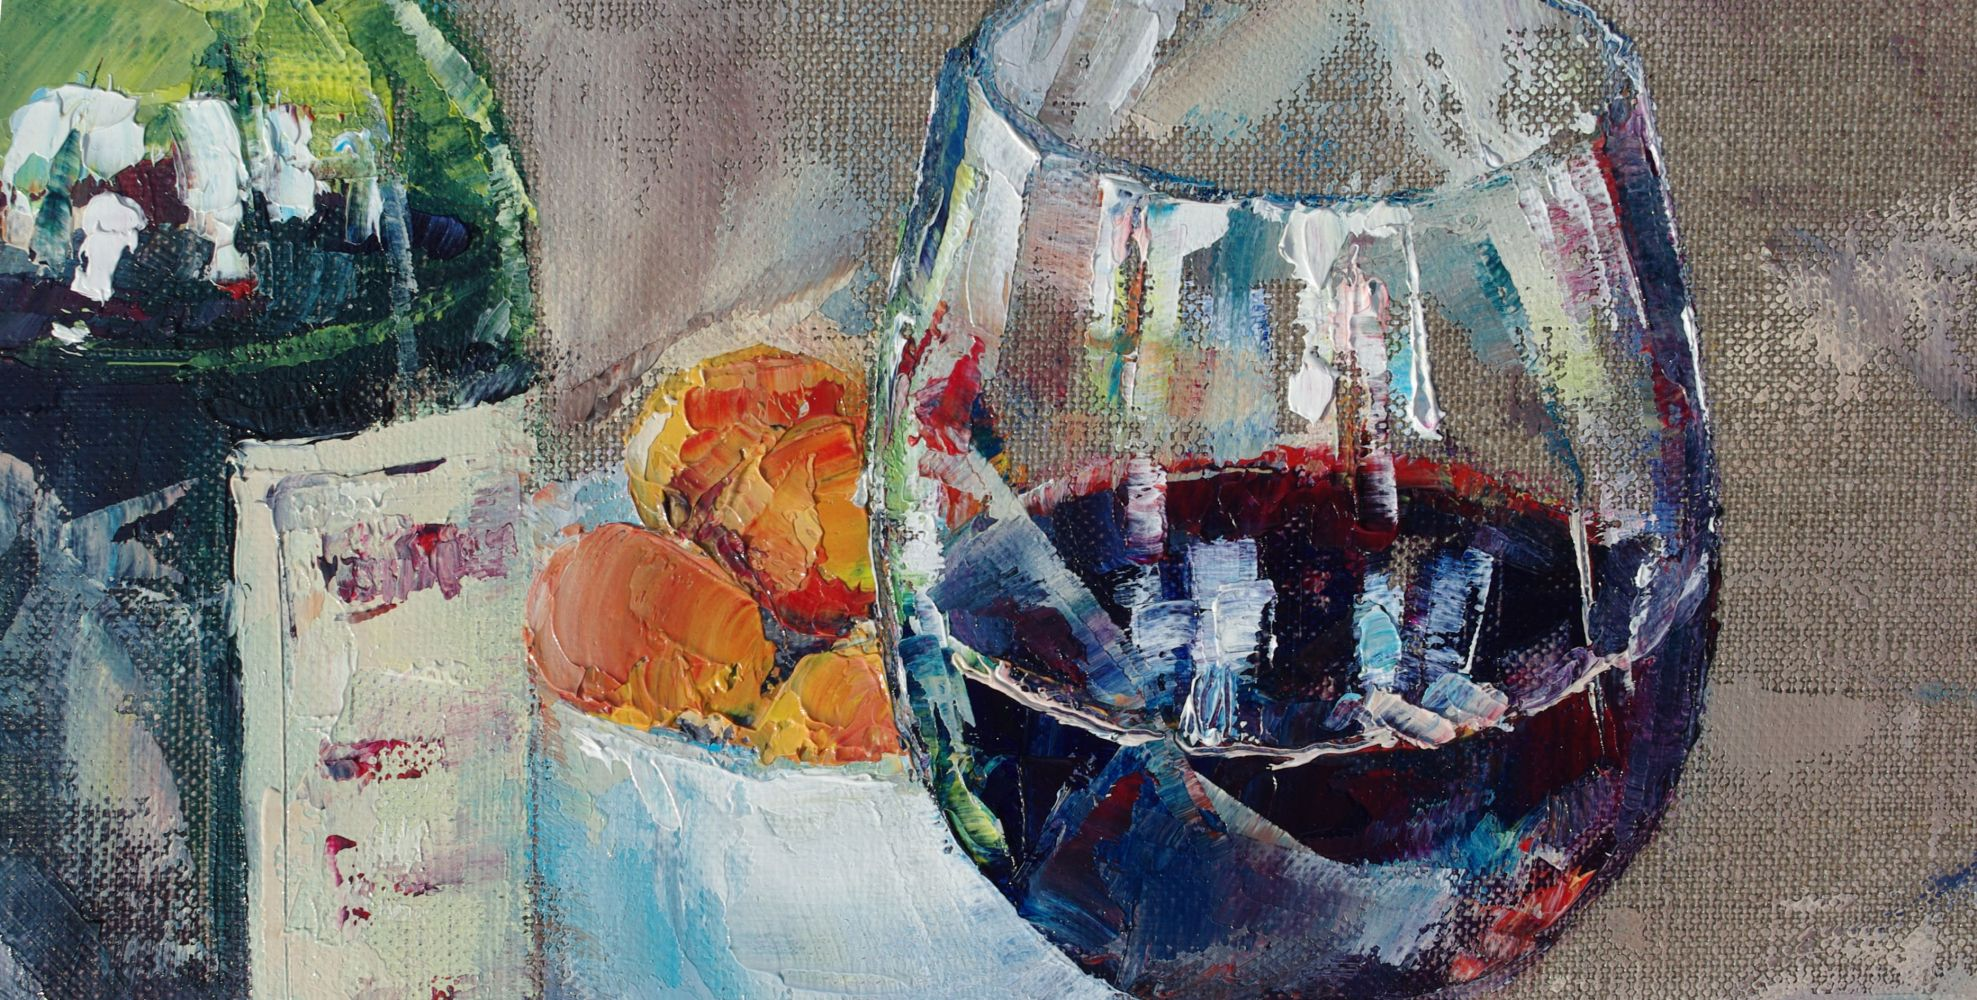 Red Wine and Apricots 1 (detail)